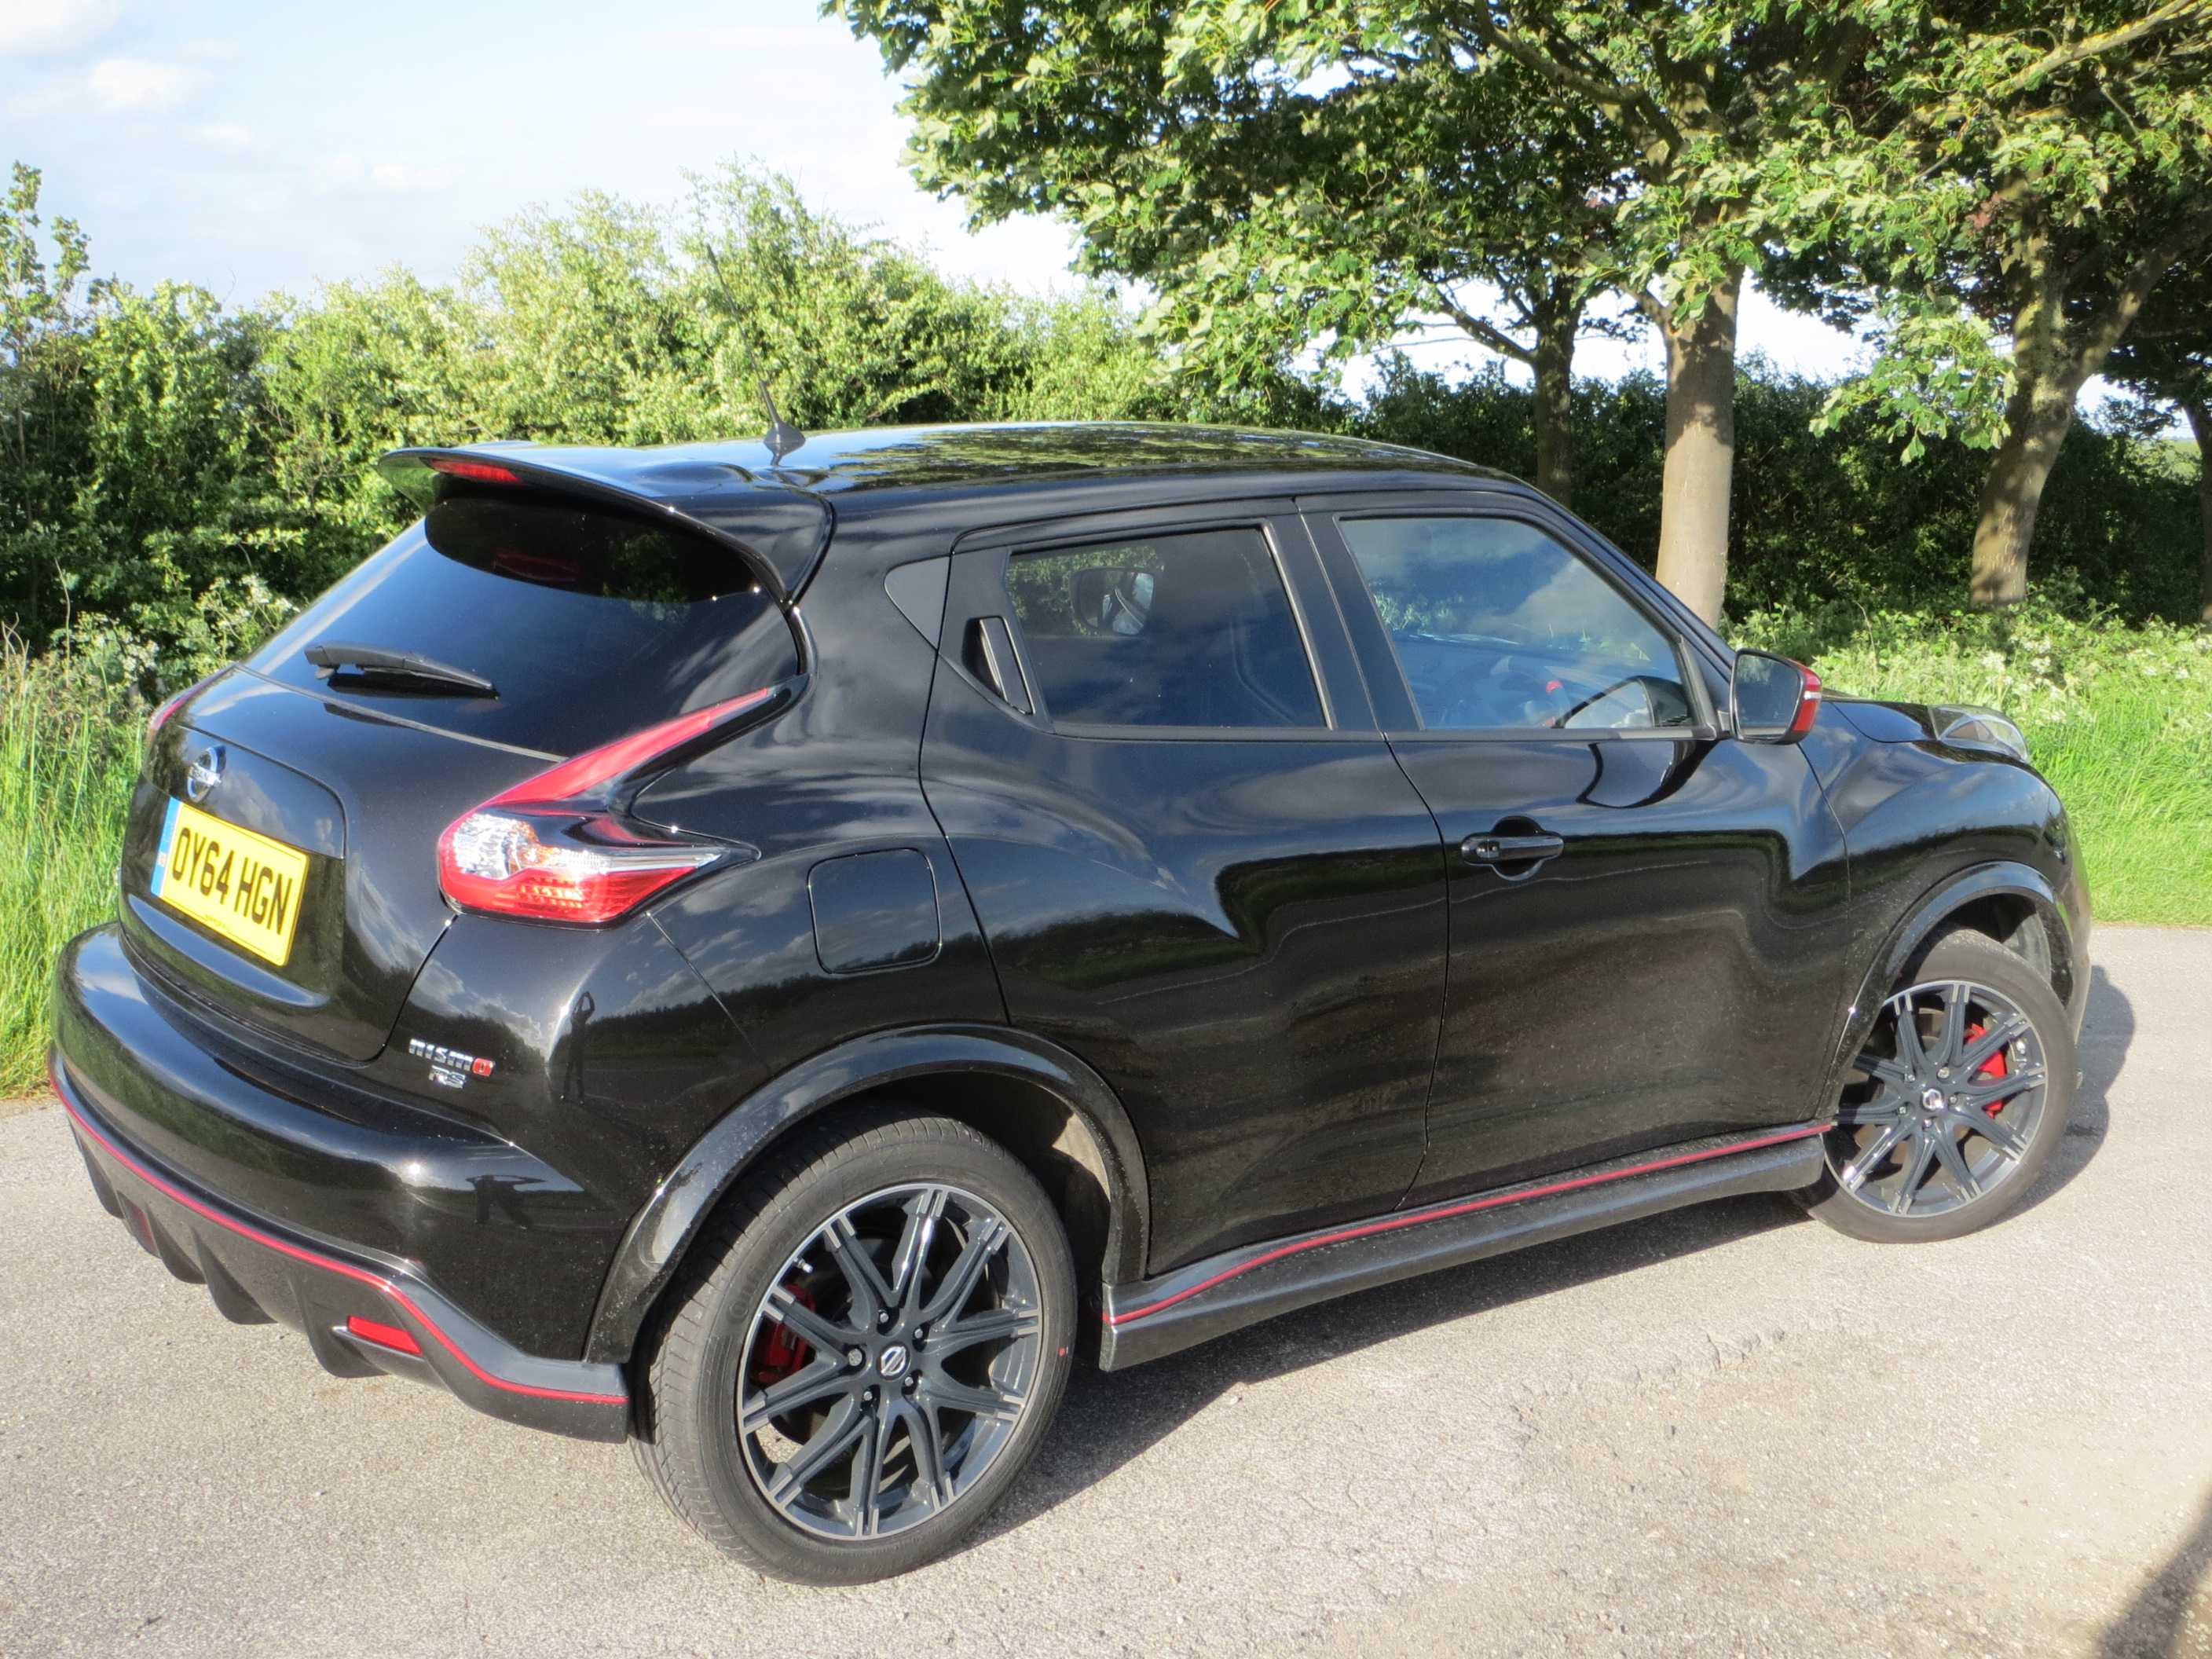 Nissan Juke Nismo RS road test report and review